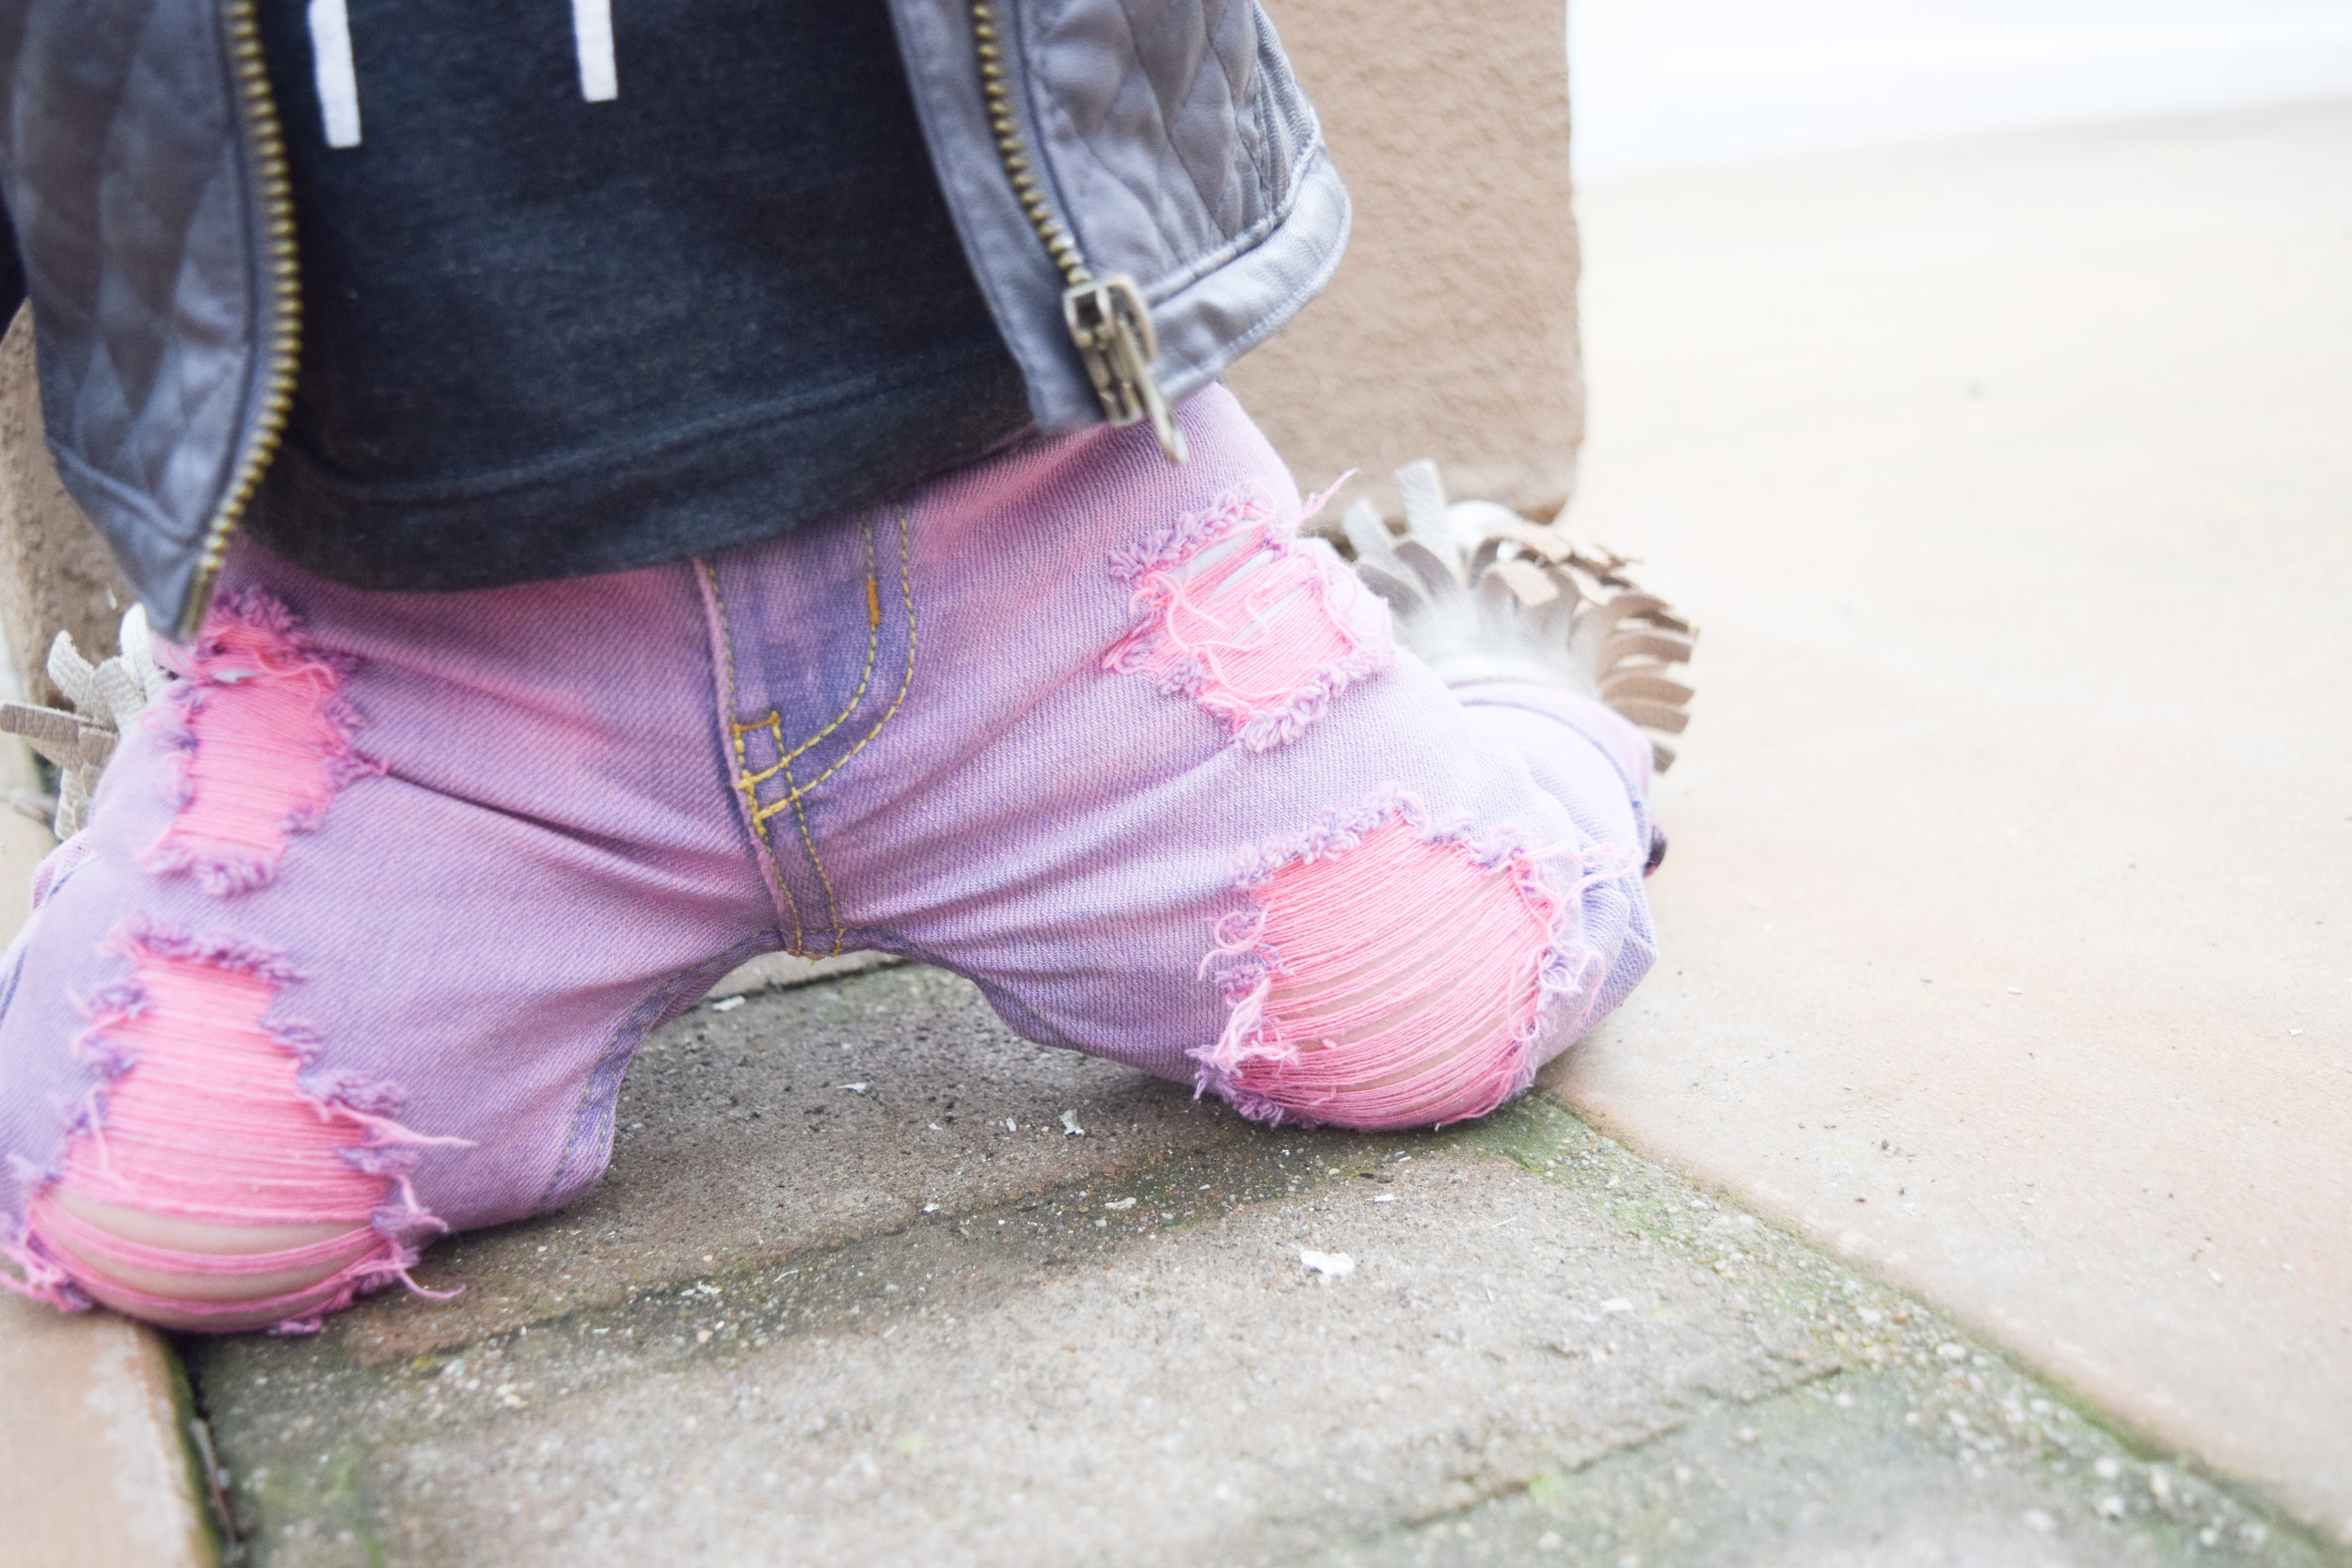 rocker baby fashion - pink baby distressed jeans